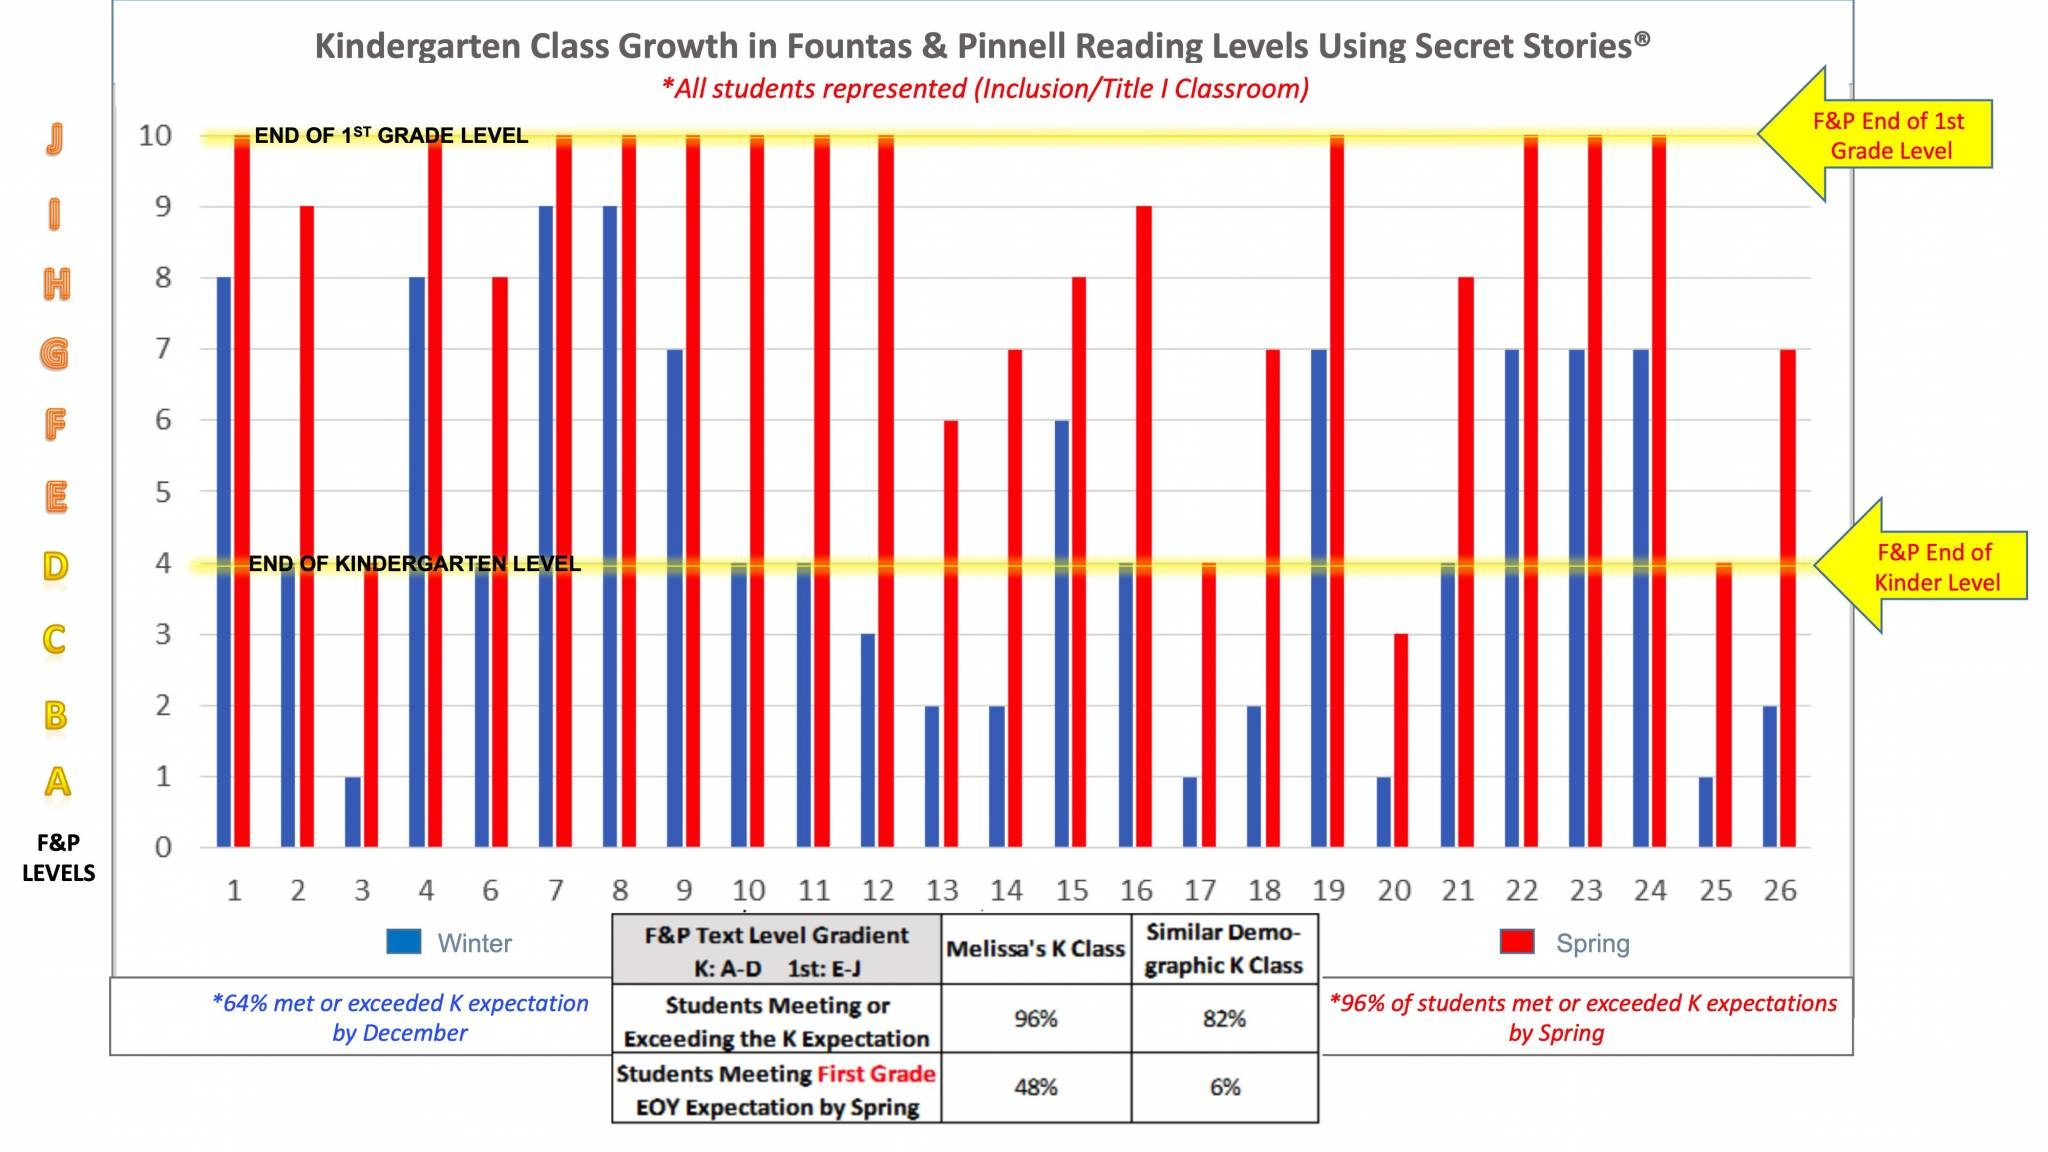 Fountas & Pinnell Kindergarten Reading Level